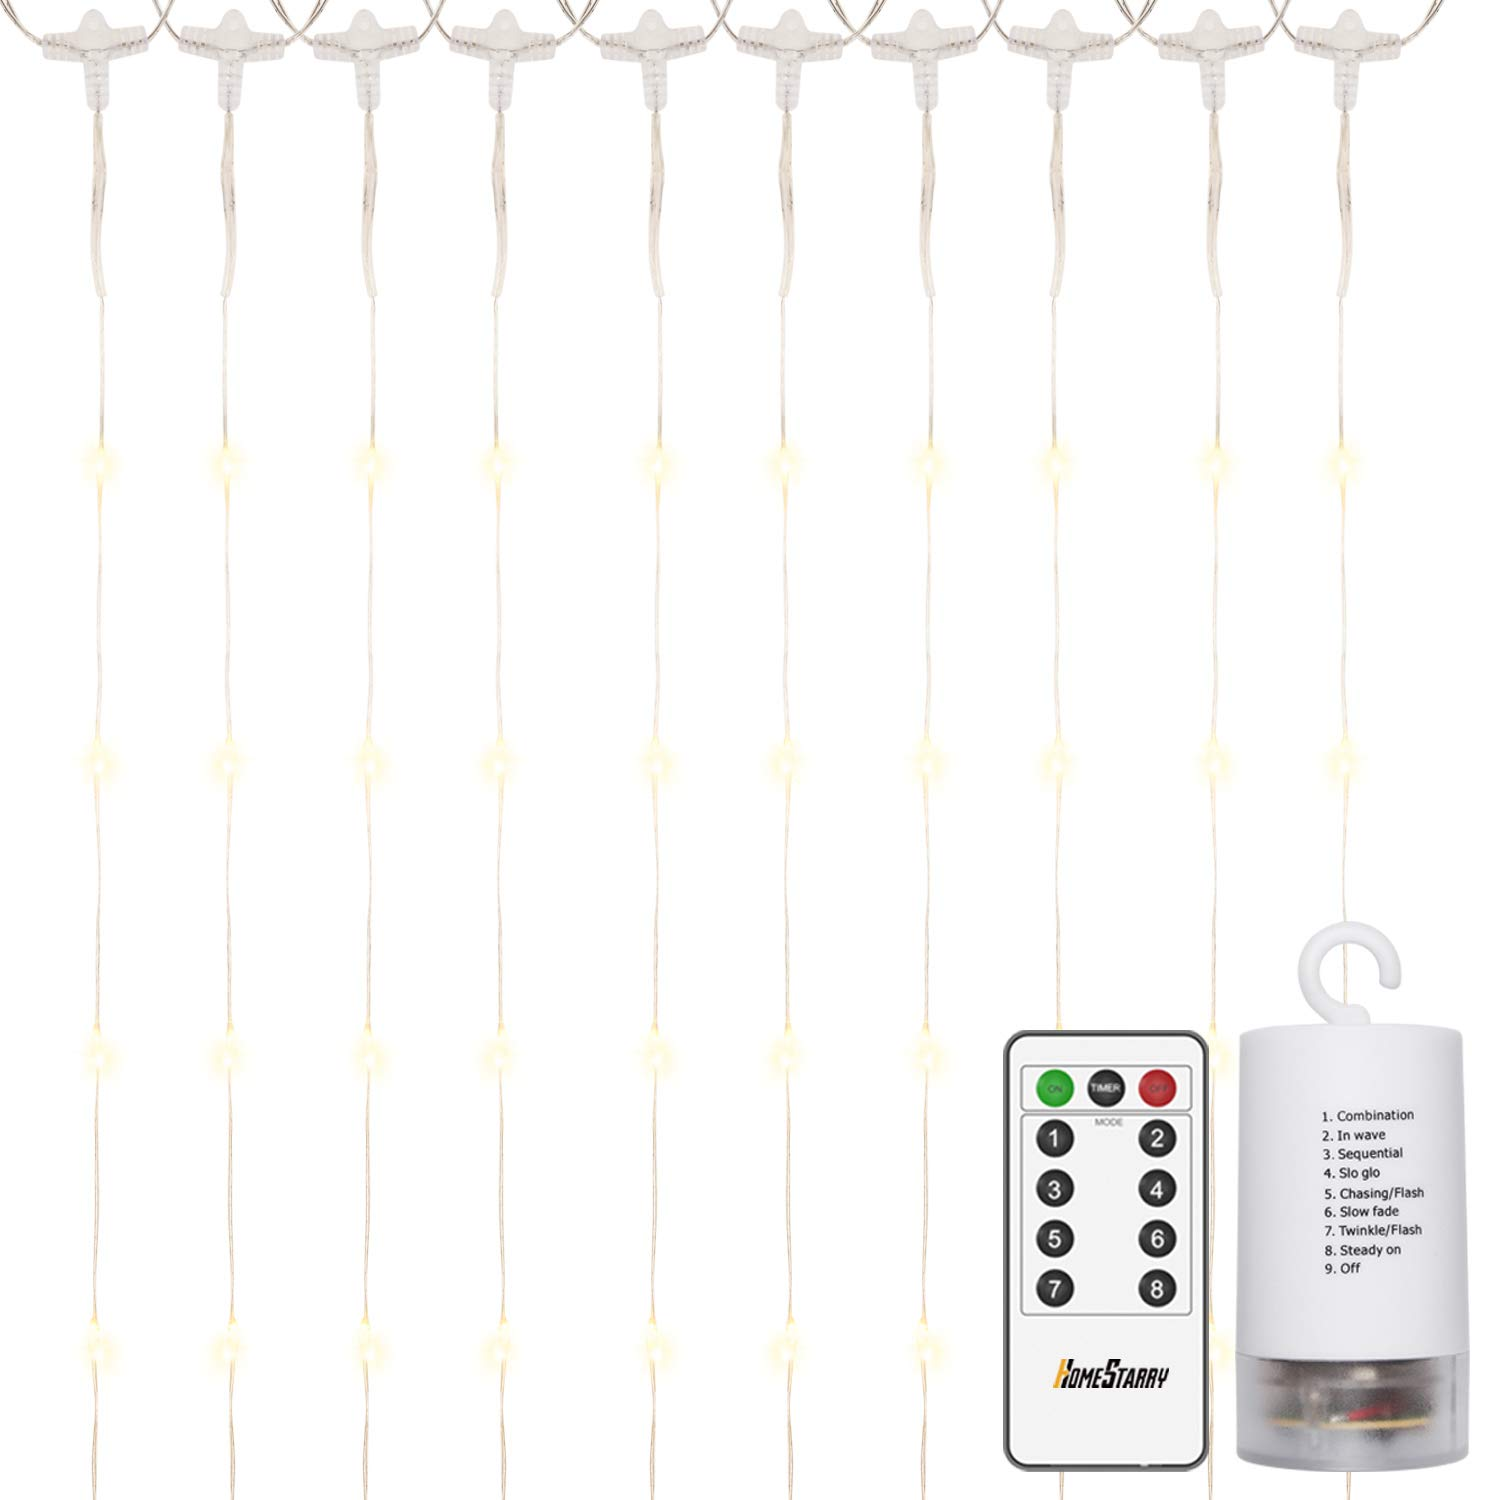 300 LEDs Window Curtain Battery Operated Fairy String Lights,Curtain String Lights with Remote, Twinkle Lights for Party, Wedding Patio Wall Décor Christmas,Indoor and Outdoor 6.3ft x10ft (Warm White)